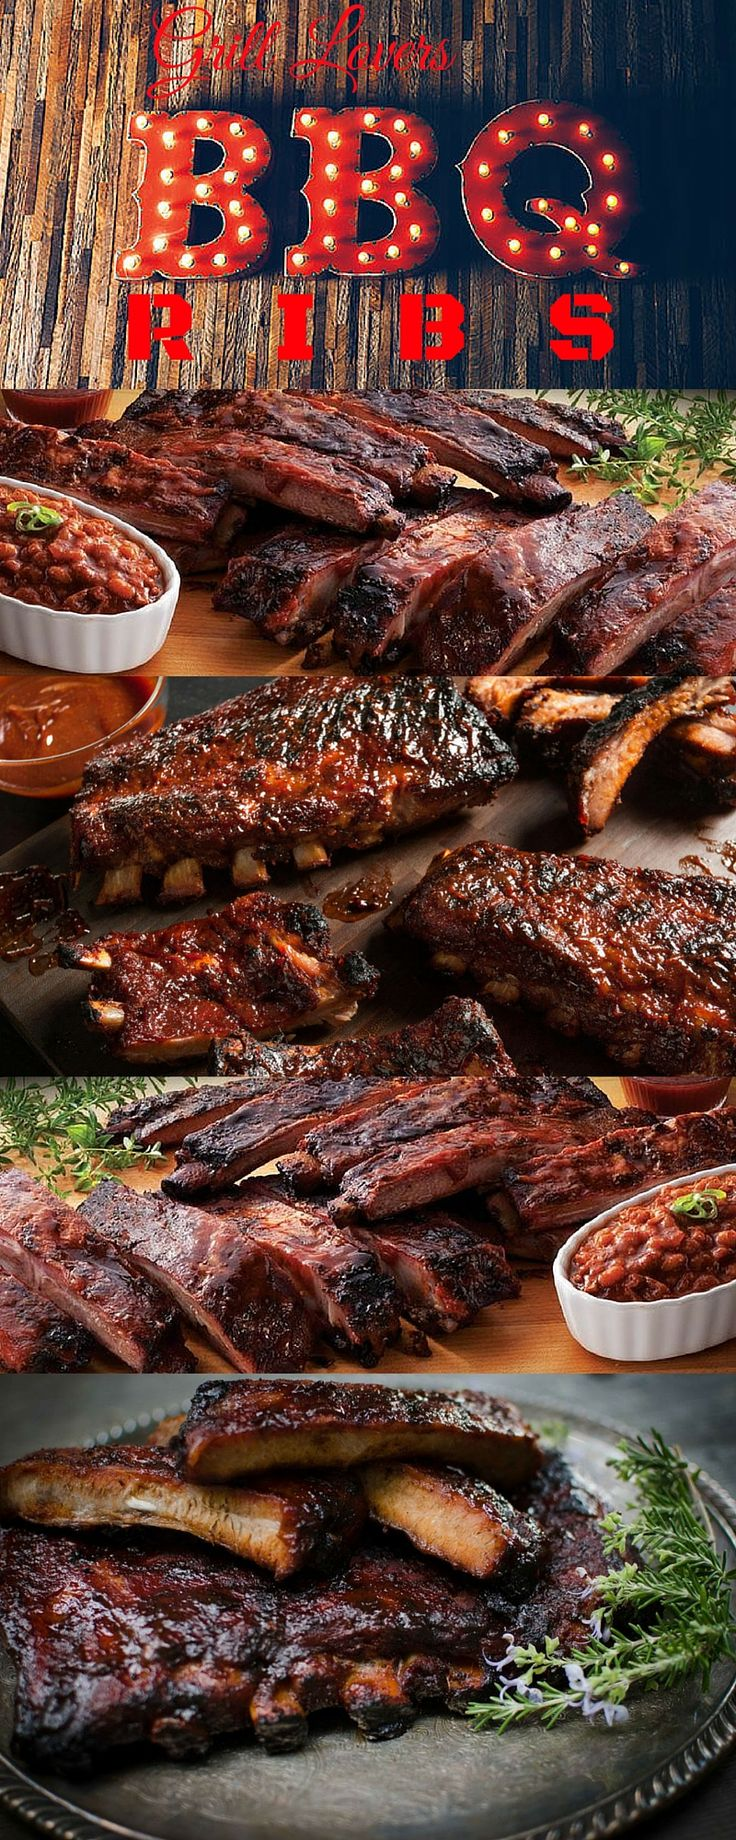 PrintGrill Lovers BBQ Ribs Recipe Ingredients• St. Louis Style ribs • olive oil • minced garlic • seasoned salt • pepper • barbecue sauce • aluminum foil pan InstructionsCut your slabs of ribs in half (Rib Racks are the secret to great ribs! They make grilling your ribs a breeze! Not only does a rack[...]